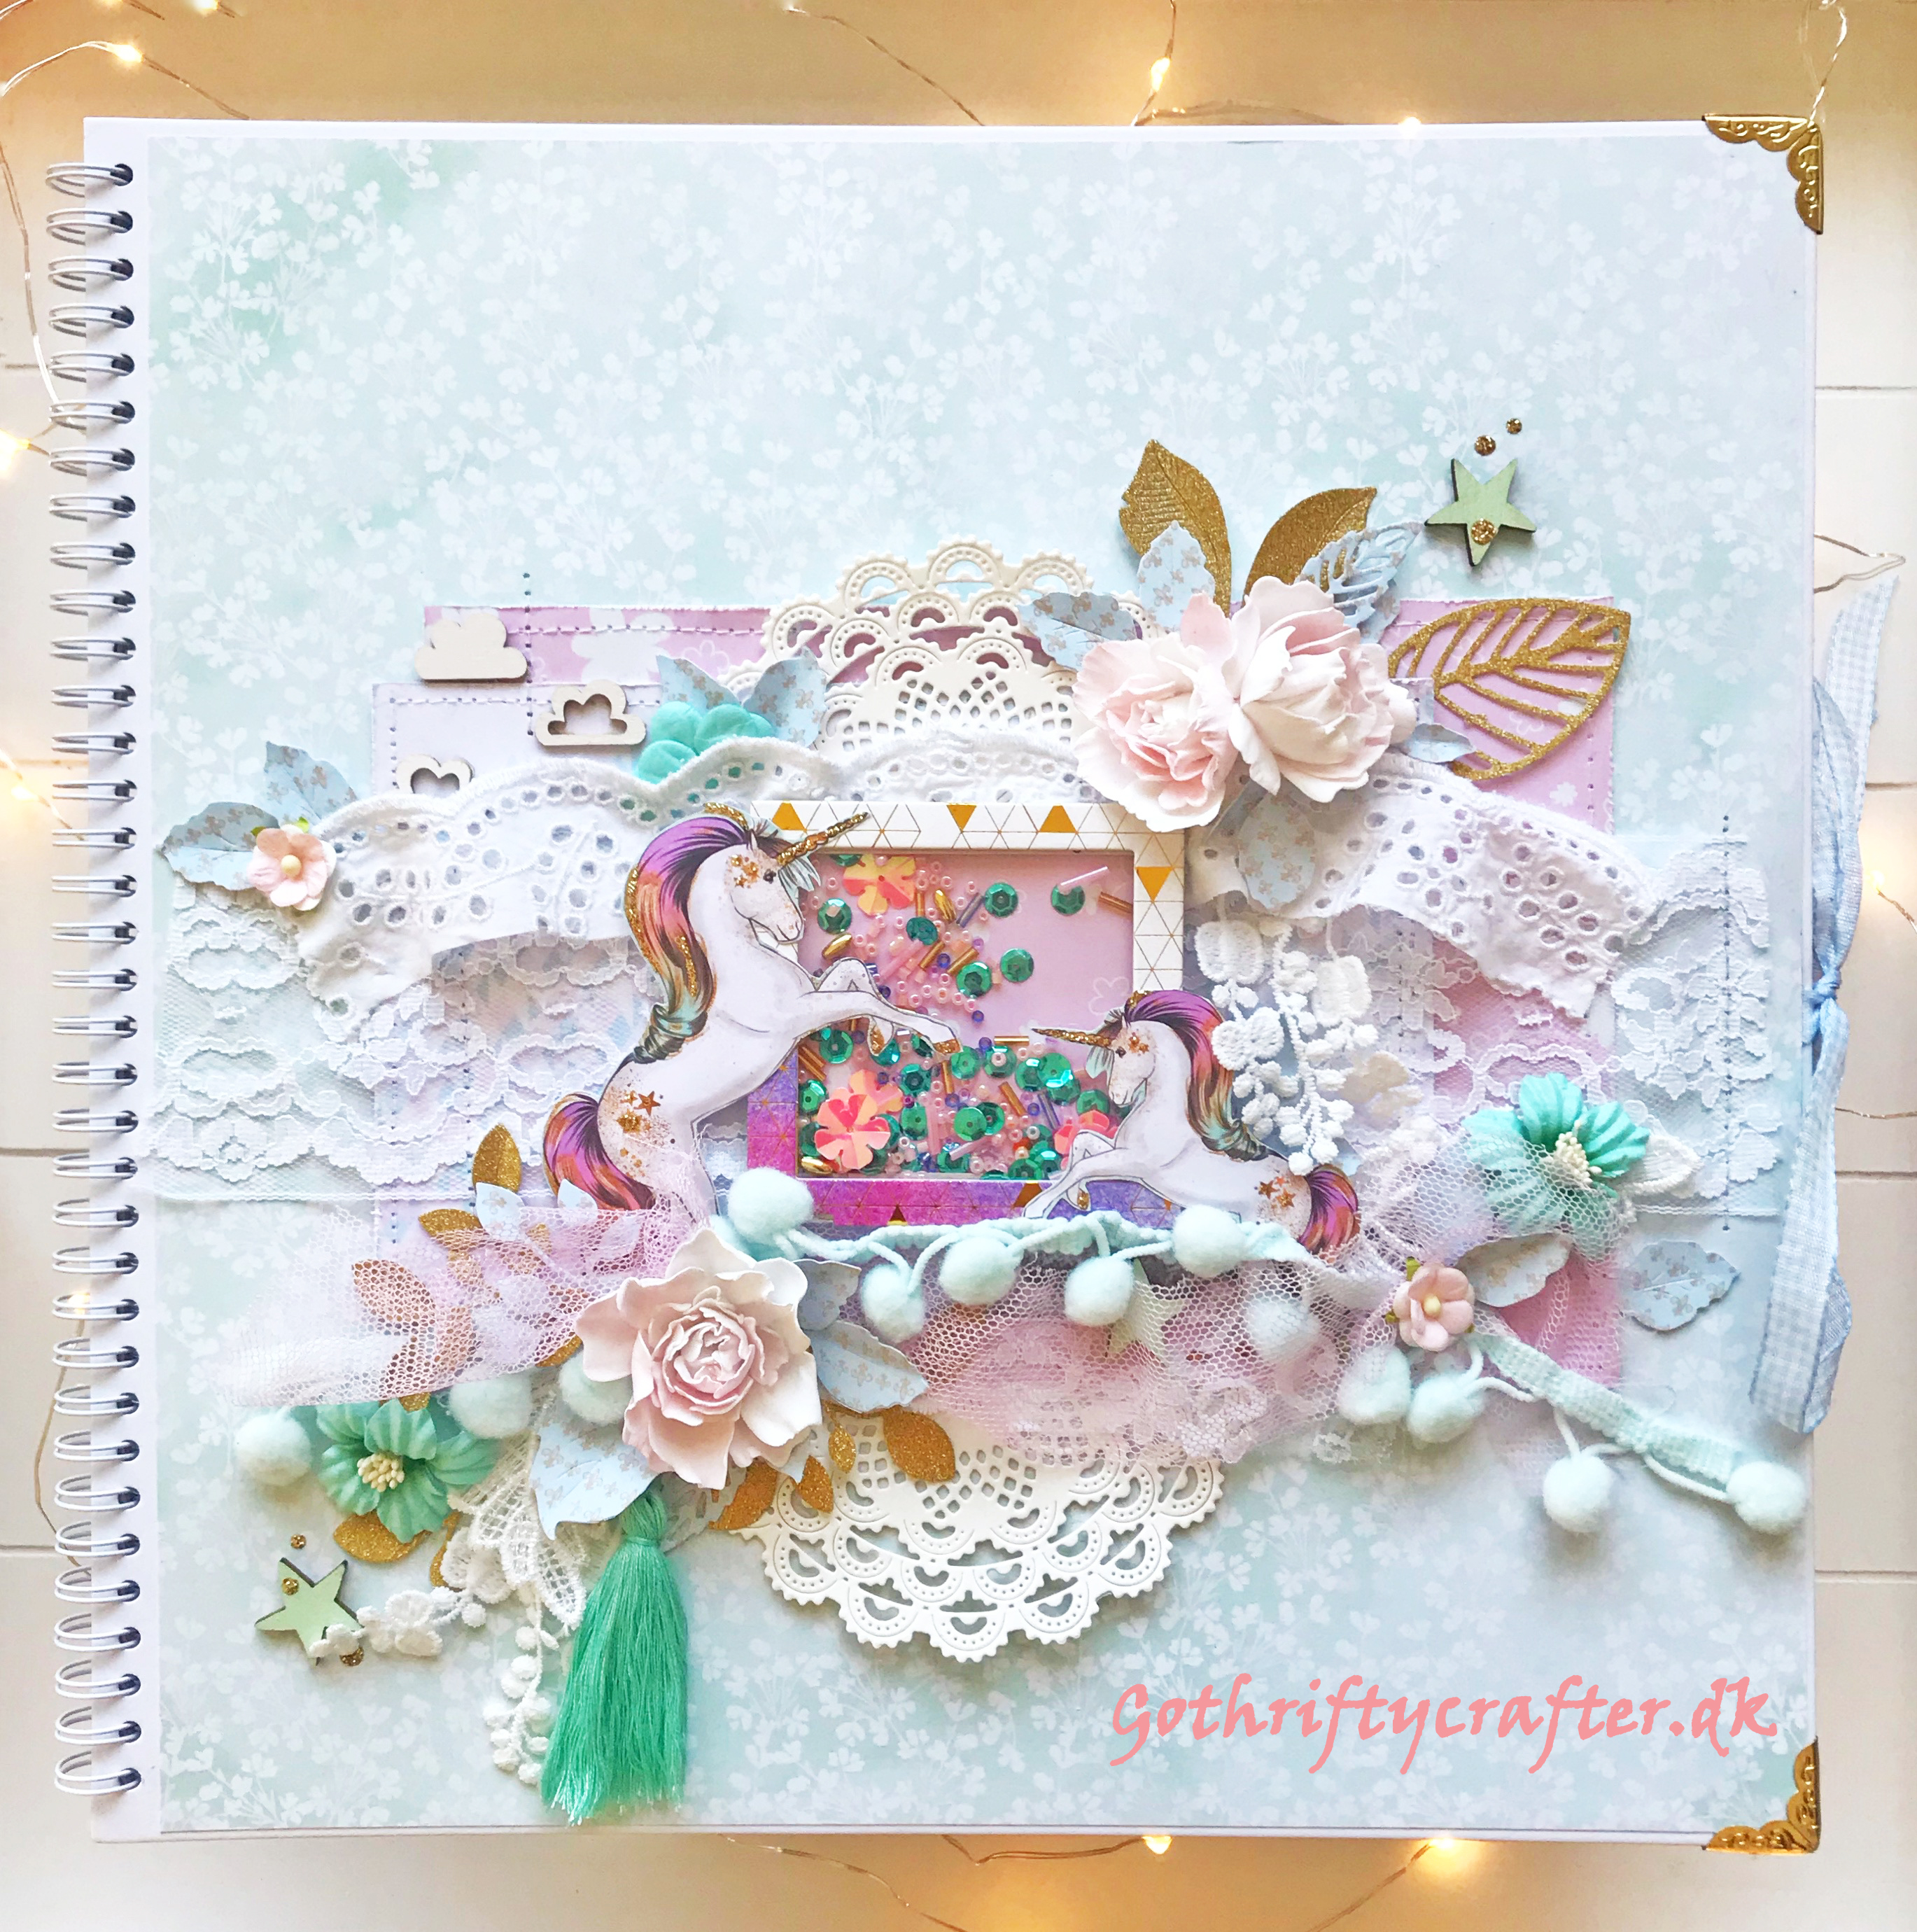 Scrapbook Gothriftycrafter Mintay album cover layout unicorn shakerjpg